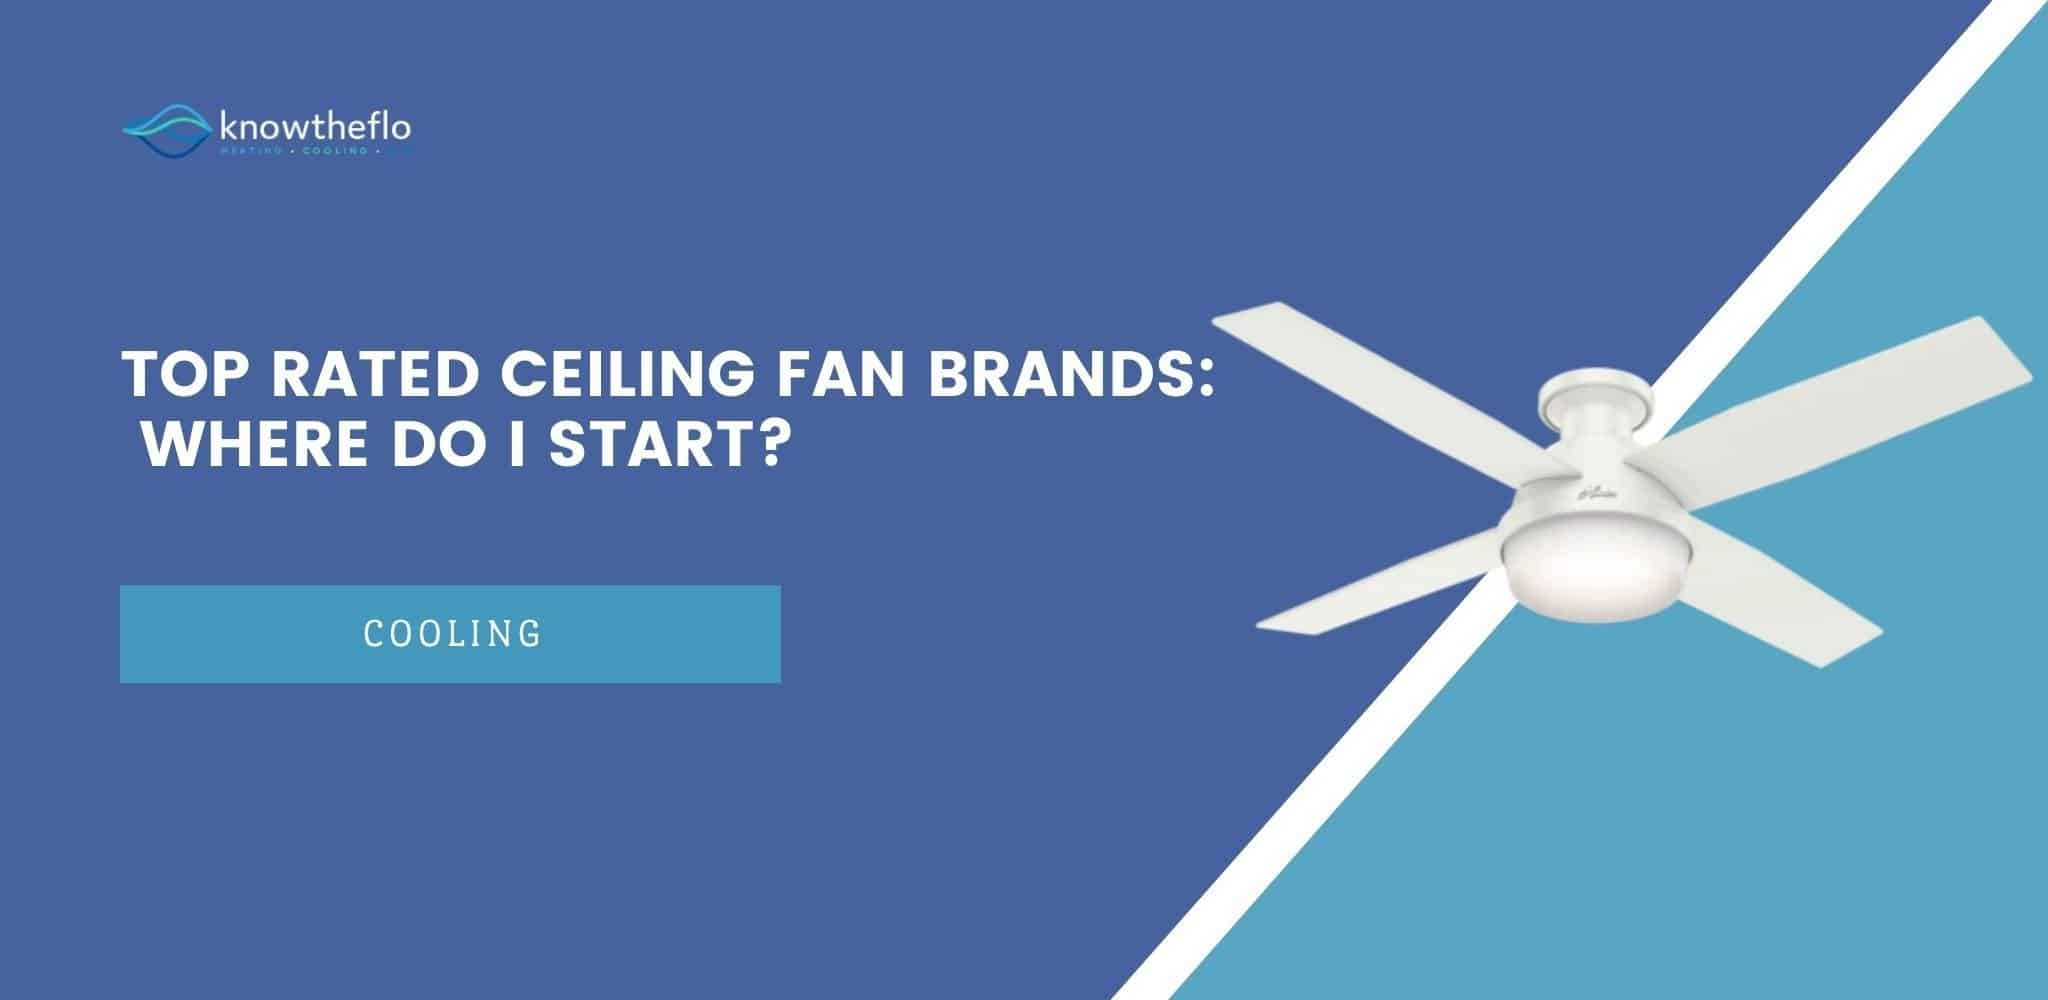 Top Rated Ceiling Fan Brands – Where do I start